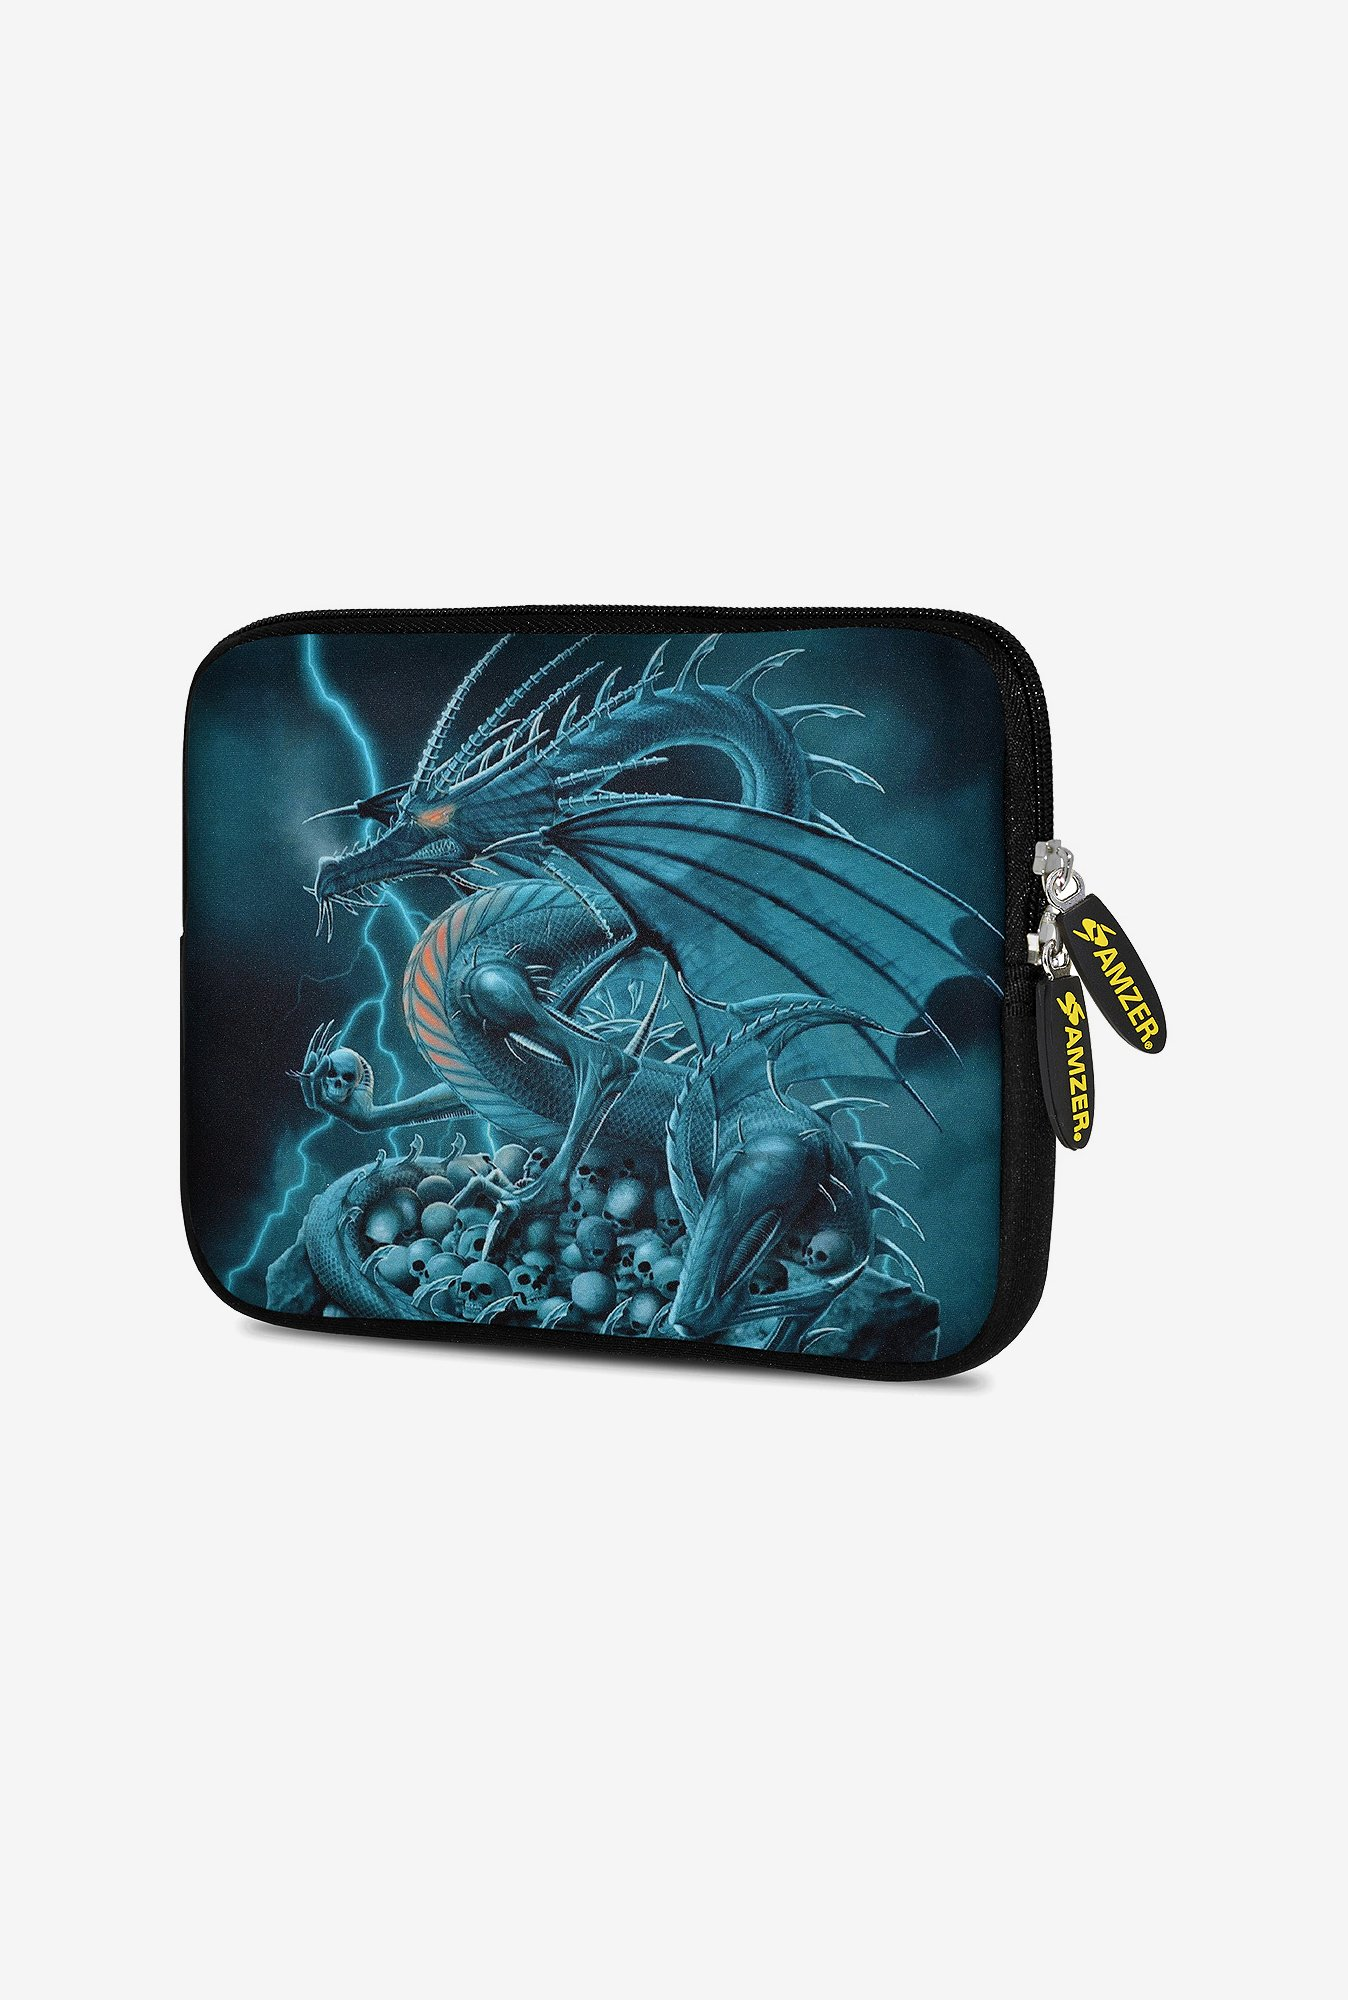 Amzer 10.5 Inch Neoprene Sleeve - Teal Dragon